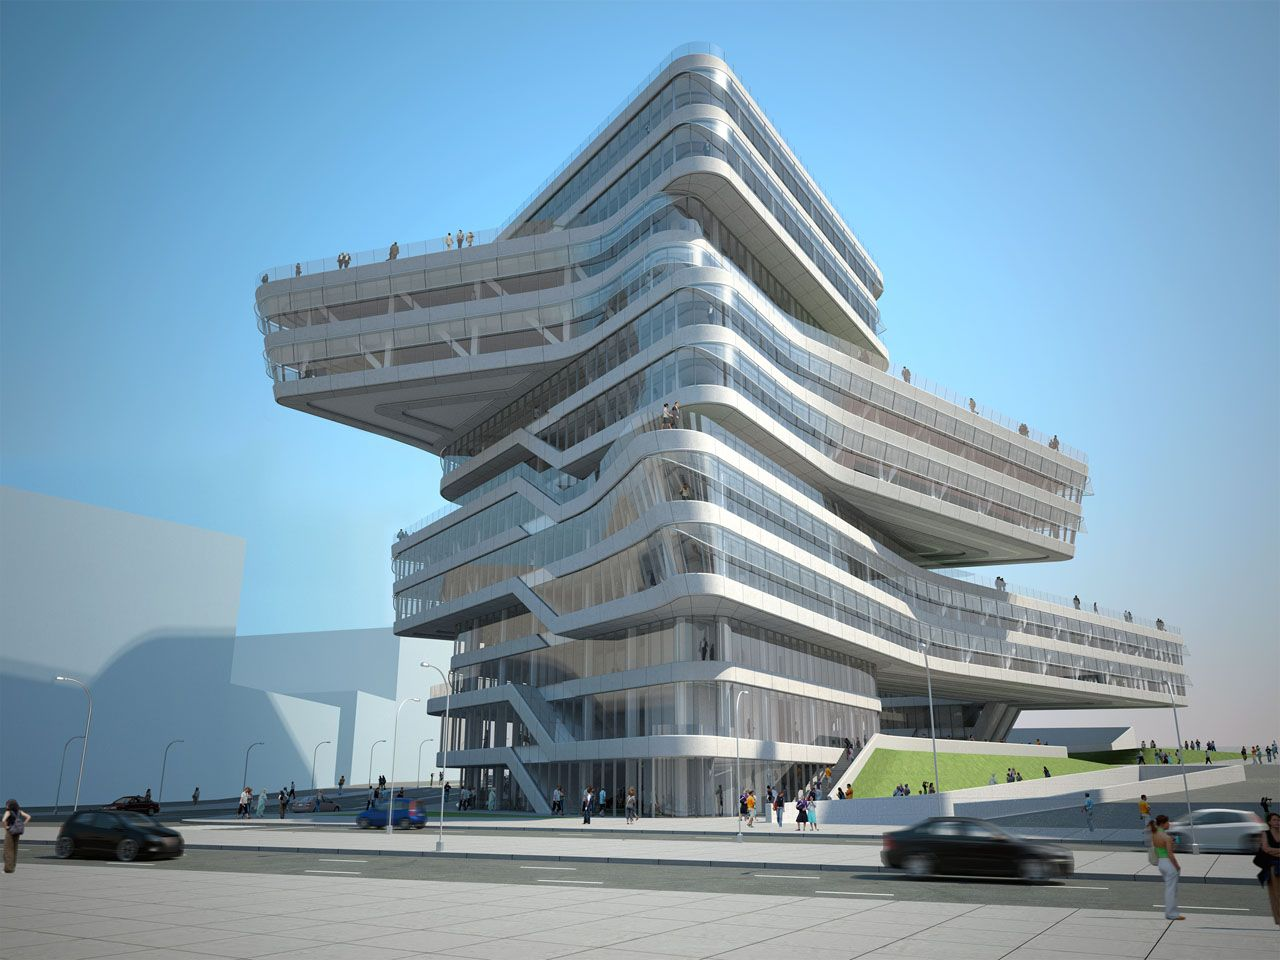 New building concepts by zaha hadid 2 buildings for Concept building